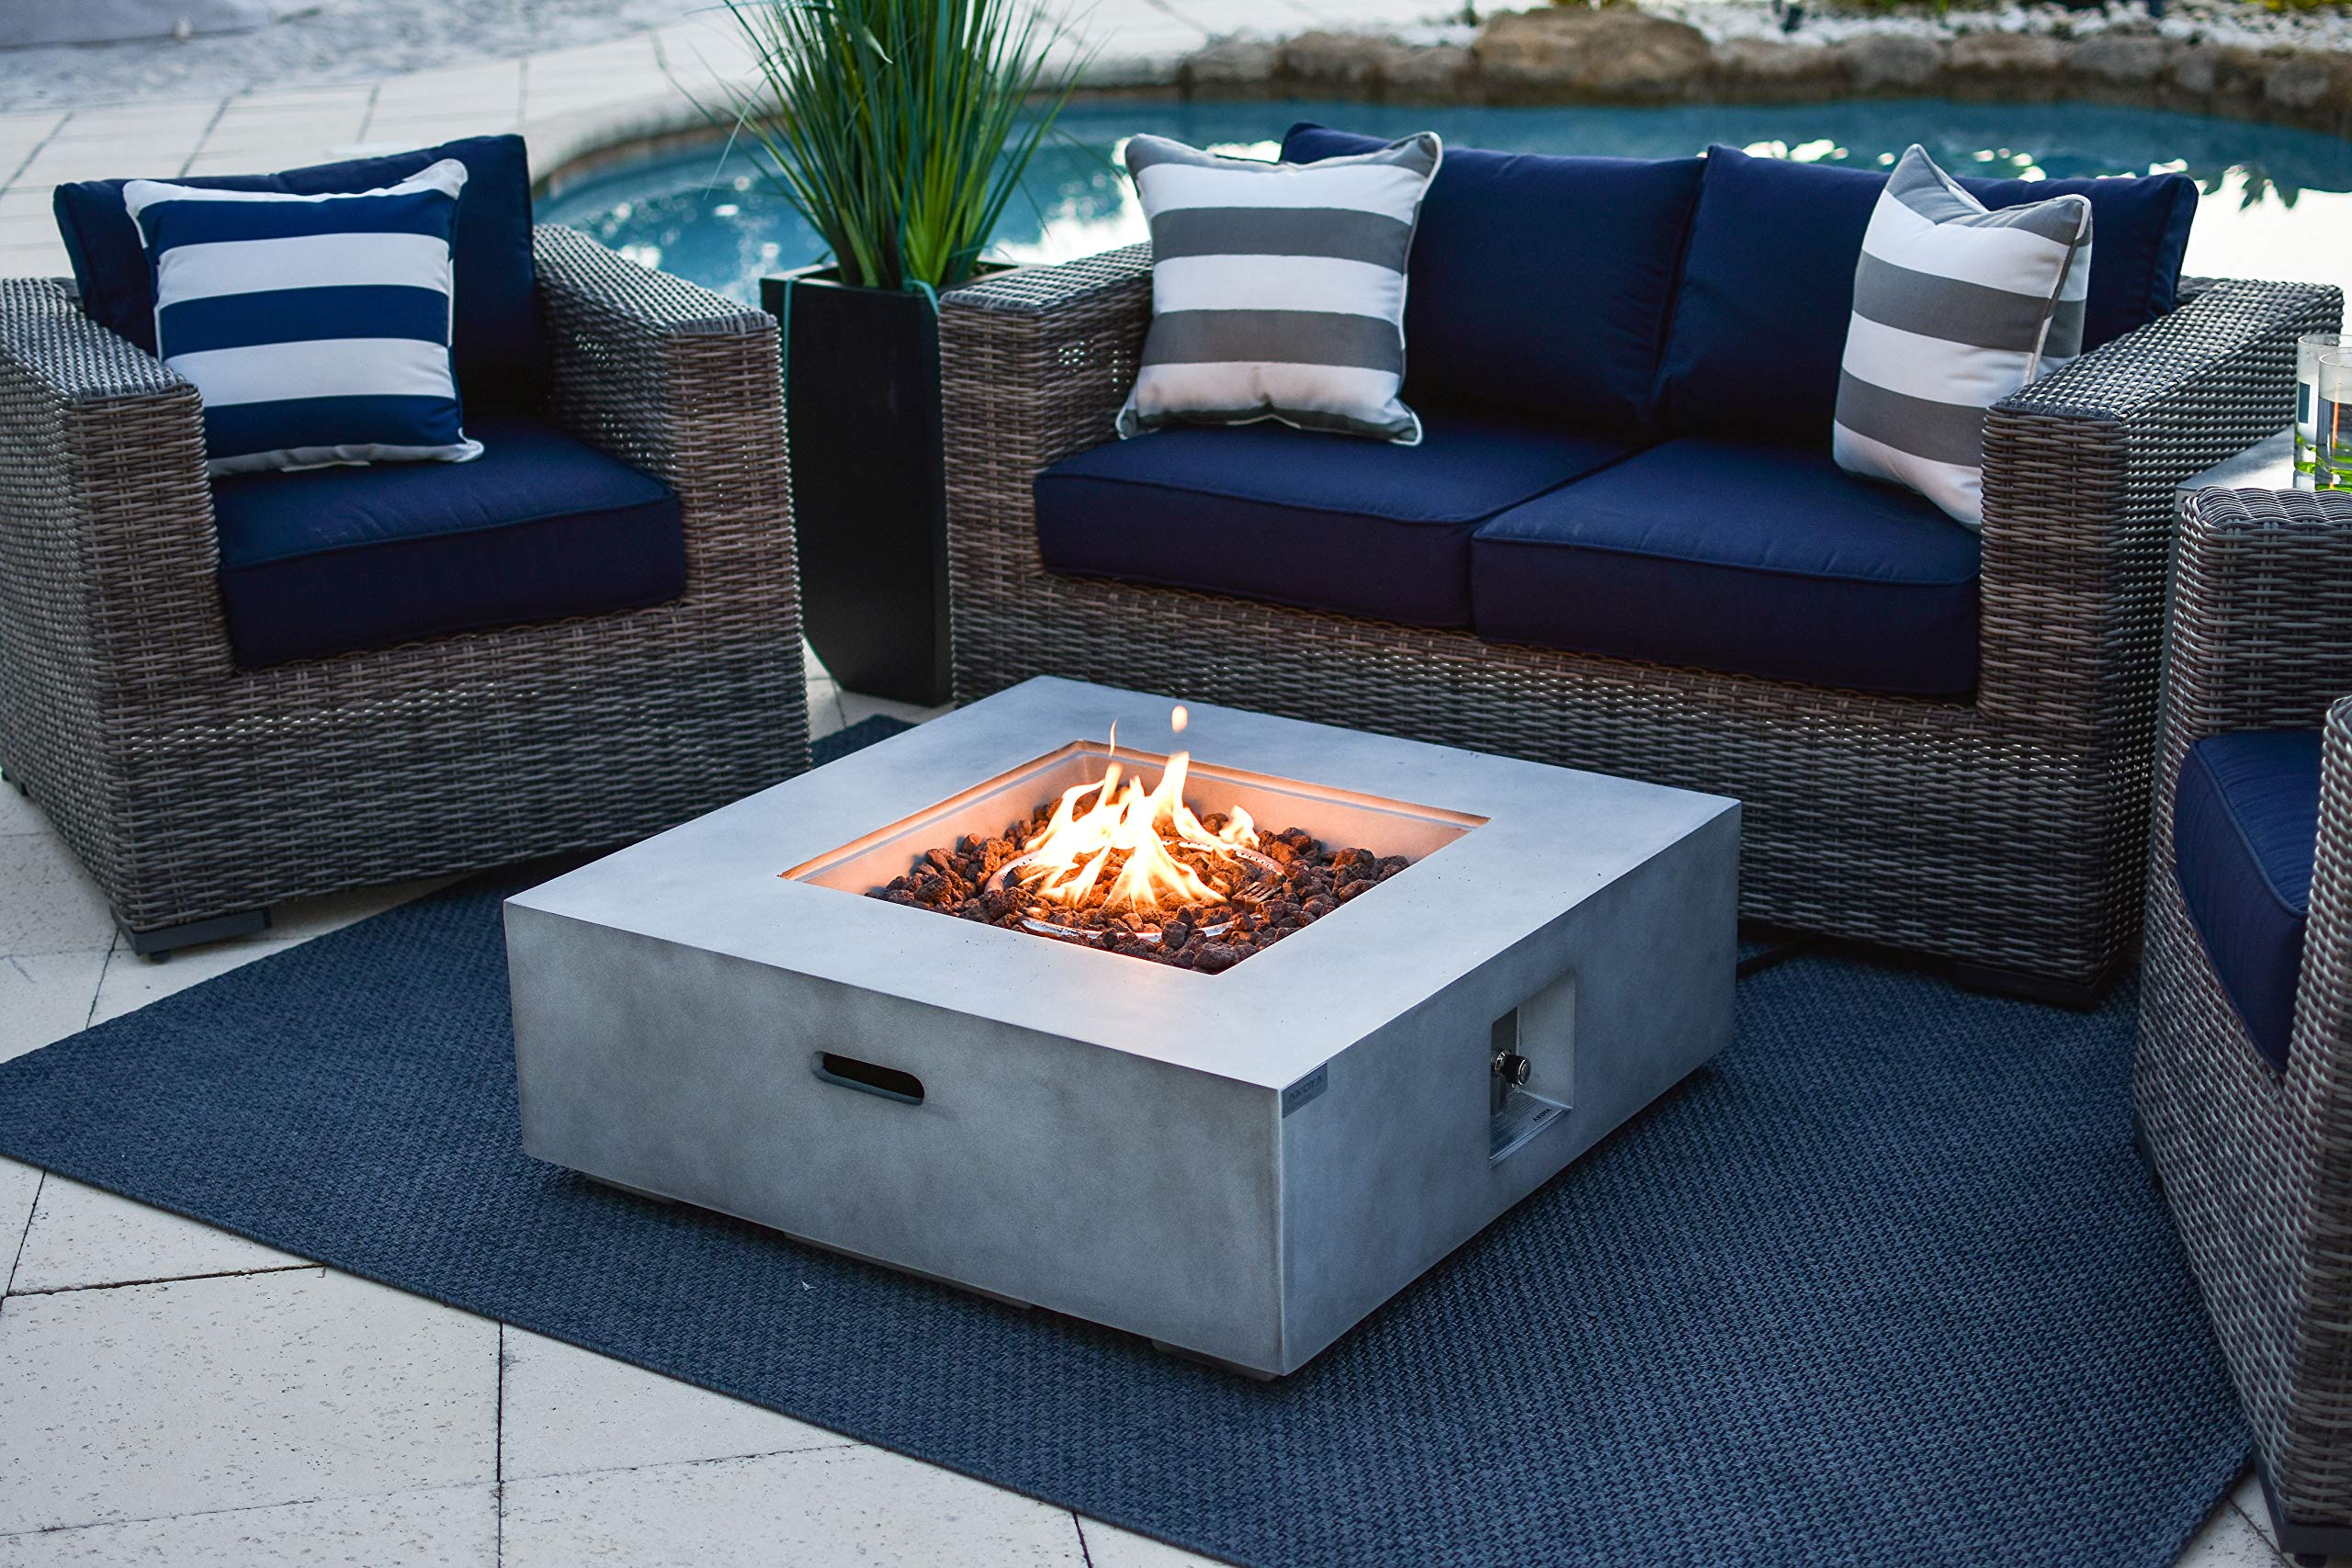 AKOYA Outdoor Essentials 35'' x 35'' Square Fiber Concrete Outdoor Propane Gas Fire Pit Table in Gray by AKOYA Outdoor Essentials